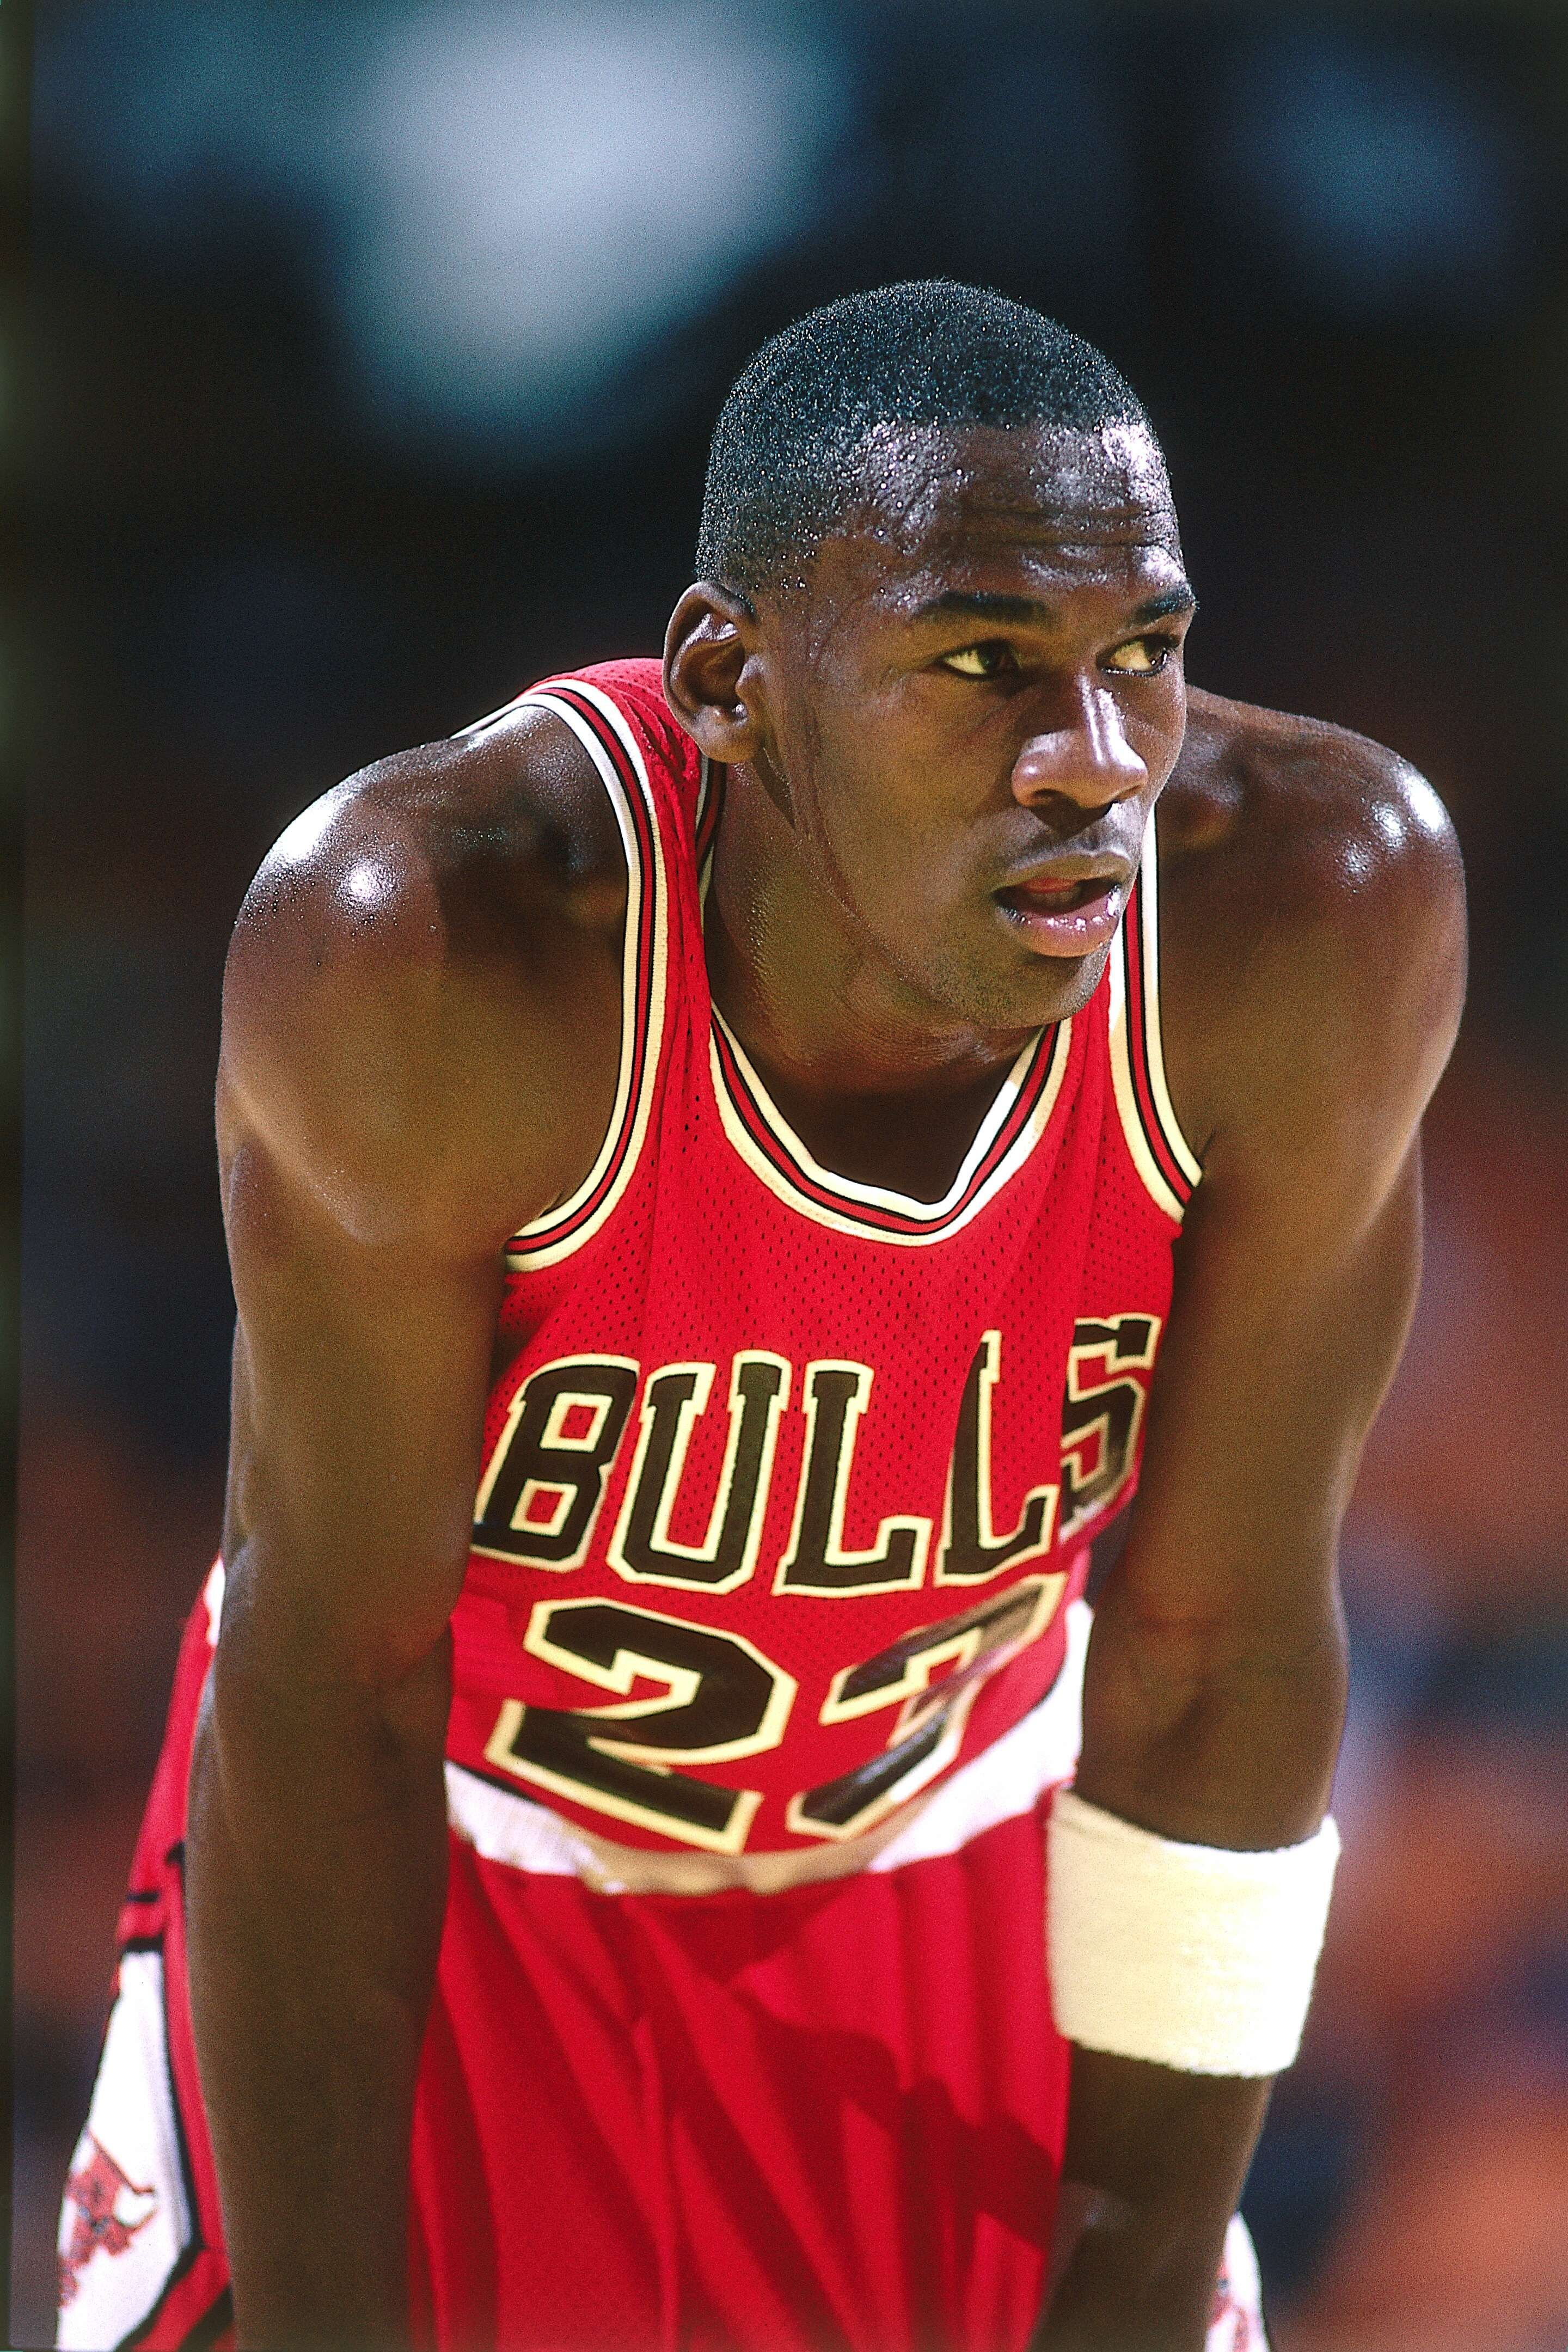 Michael Jordan in the 1986 season NBA game at the Great Western Forum in Los Angeles, California. | Source: Getty Images